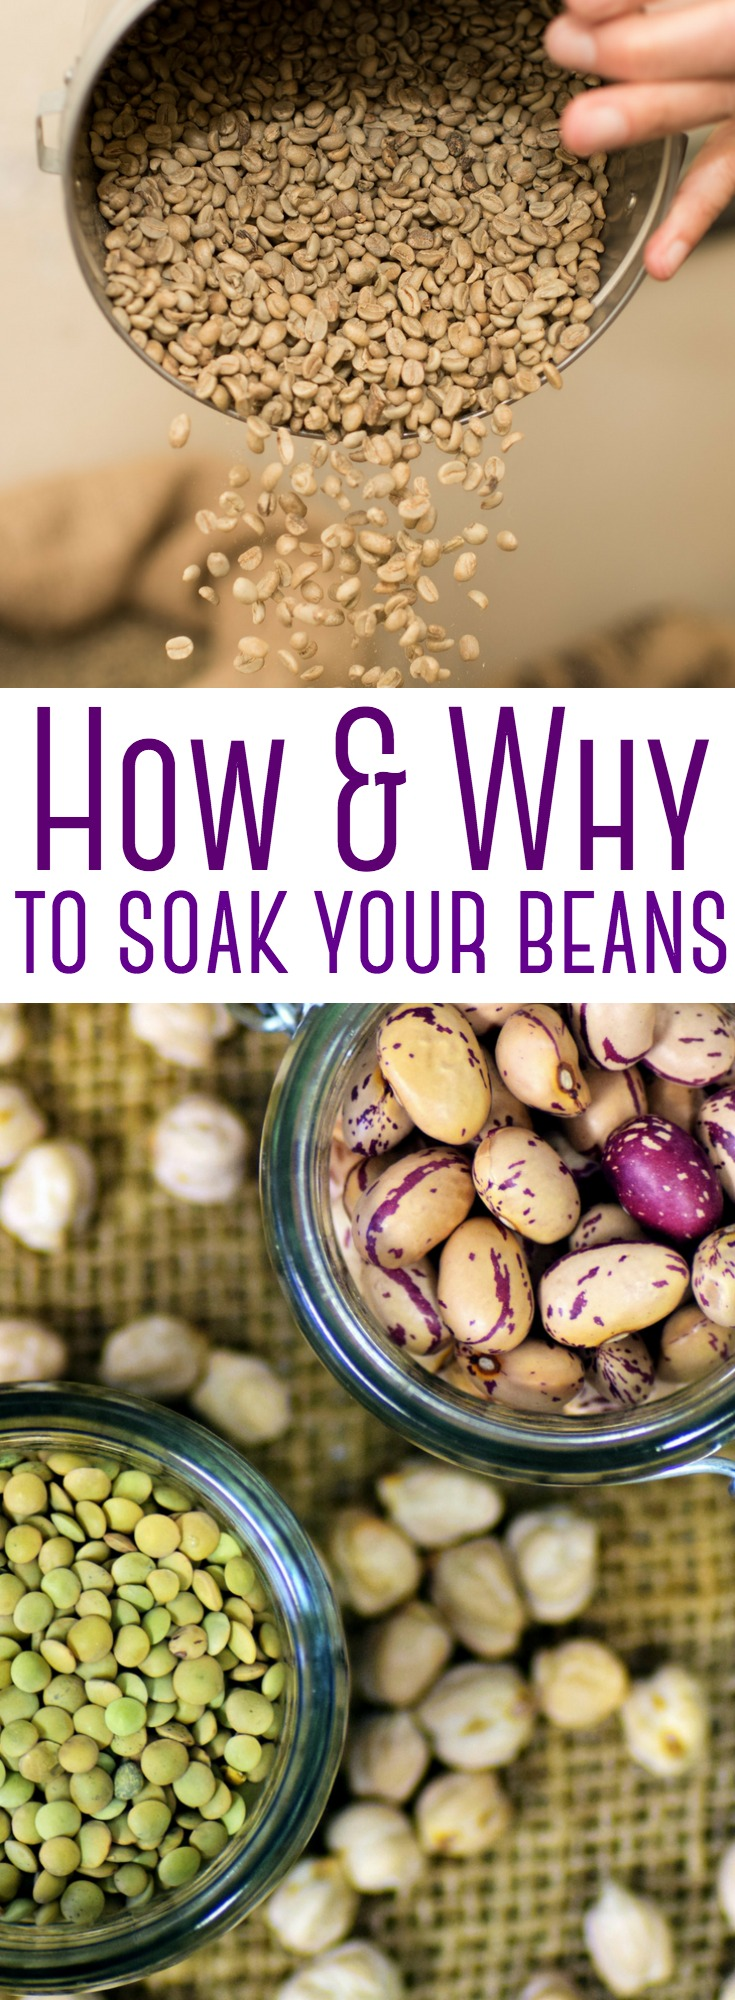 You can make beans successfully with or without soaking them beforehand - but it's not quite that cut & dry. Find out why you need to take that extra step and soak your beans beforehand.     #beans #soaking #soakedbeans #phyticacid #health #wellness